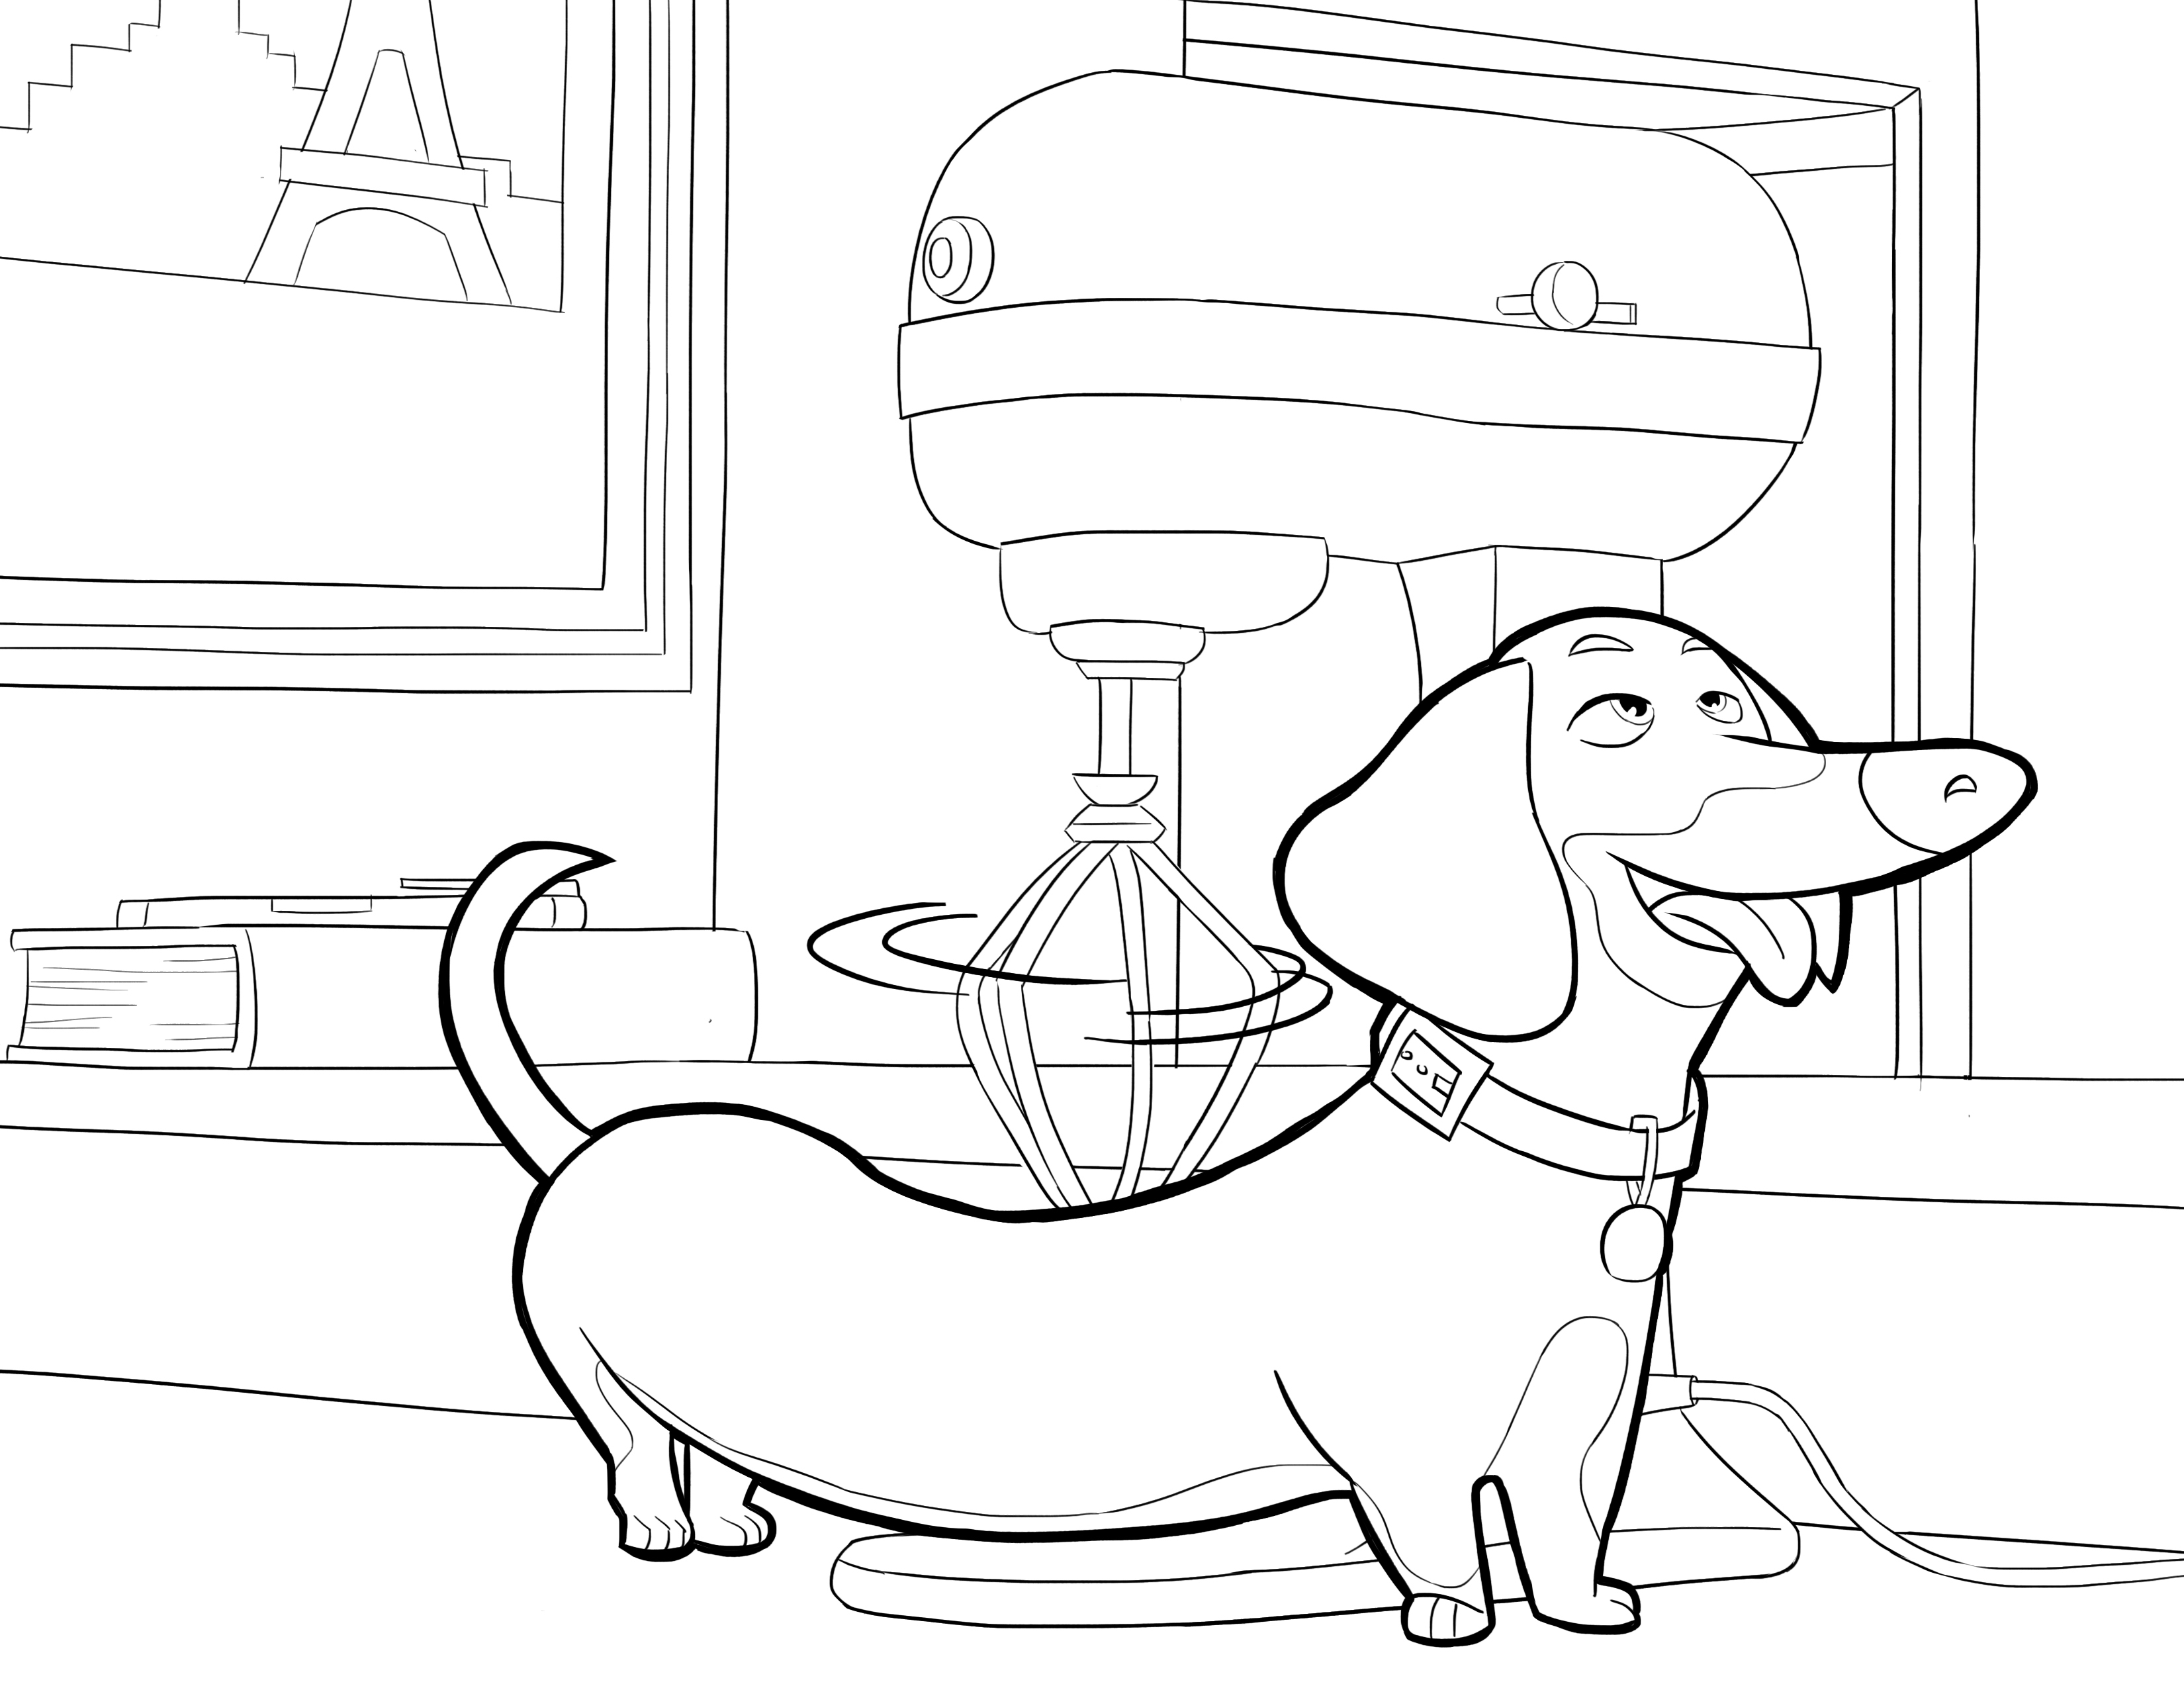 The secret life of pets coloring pages to download and